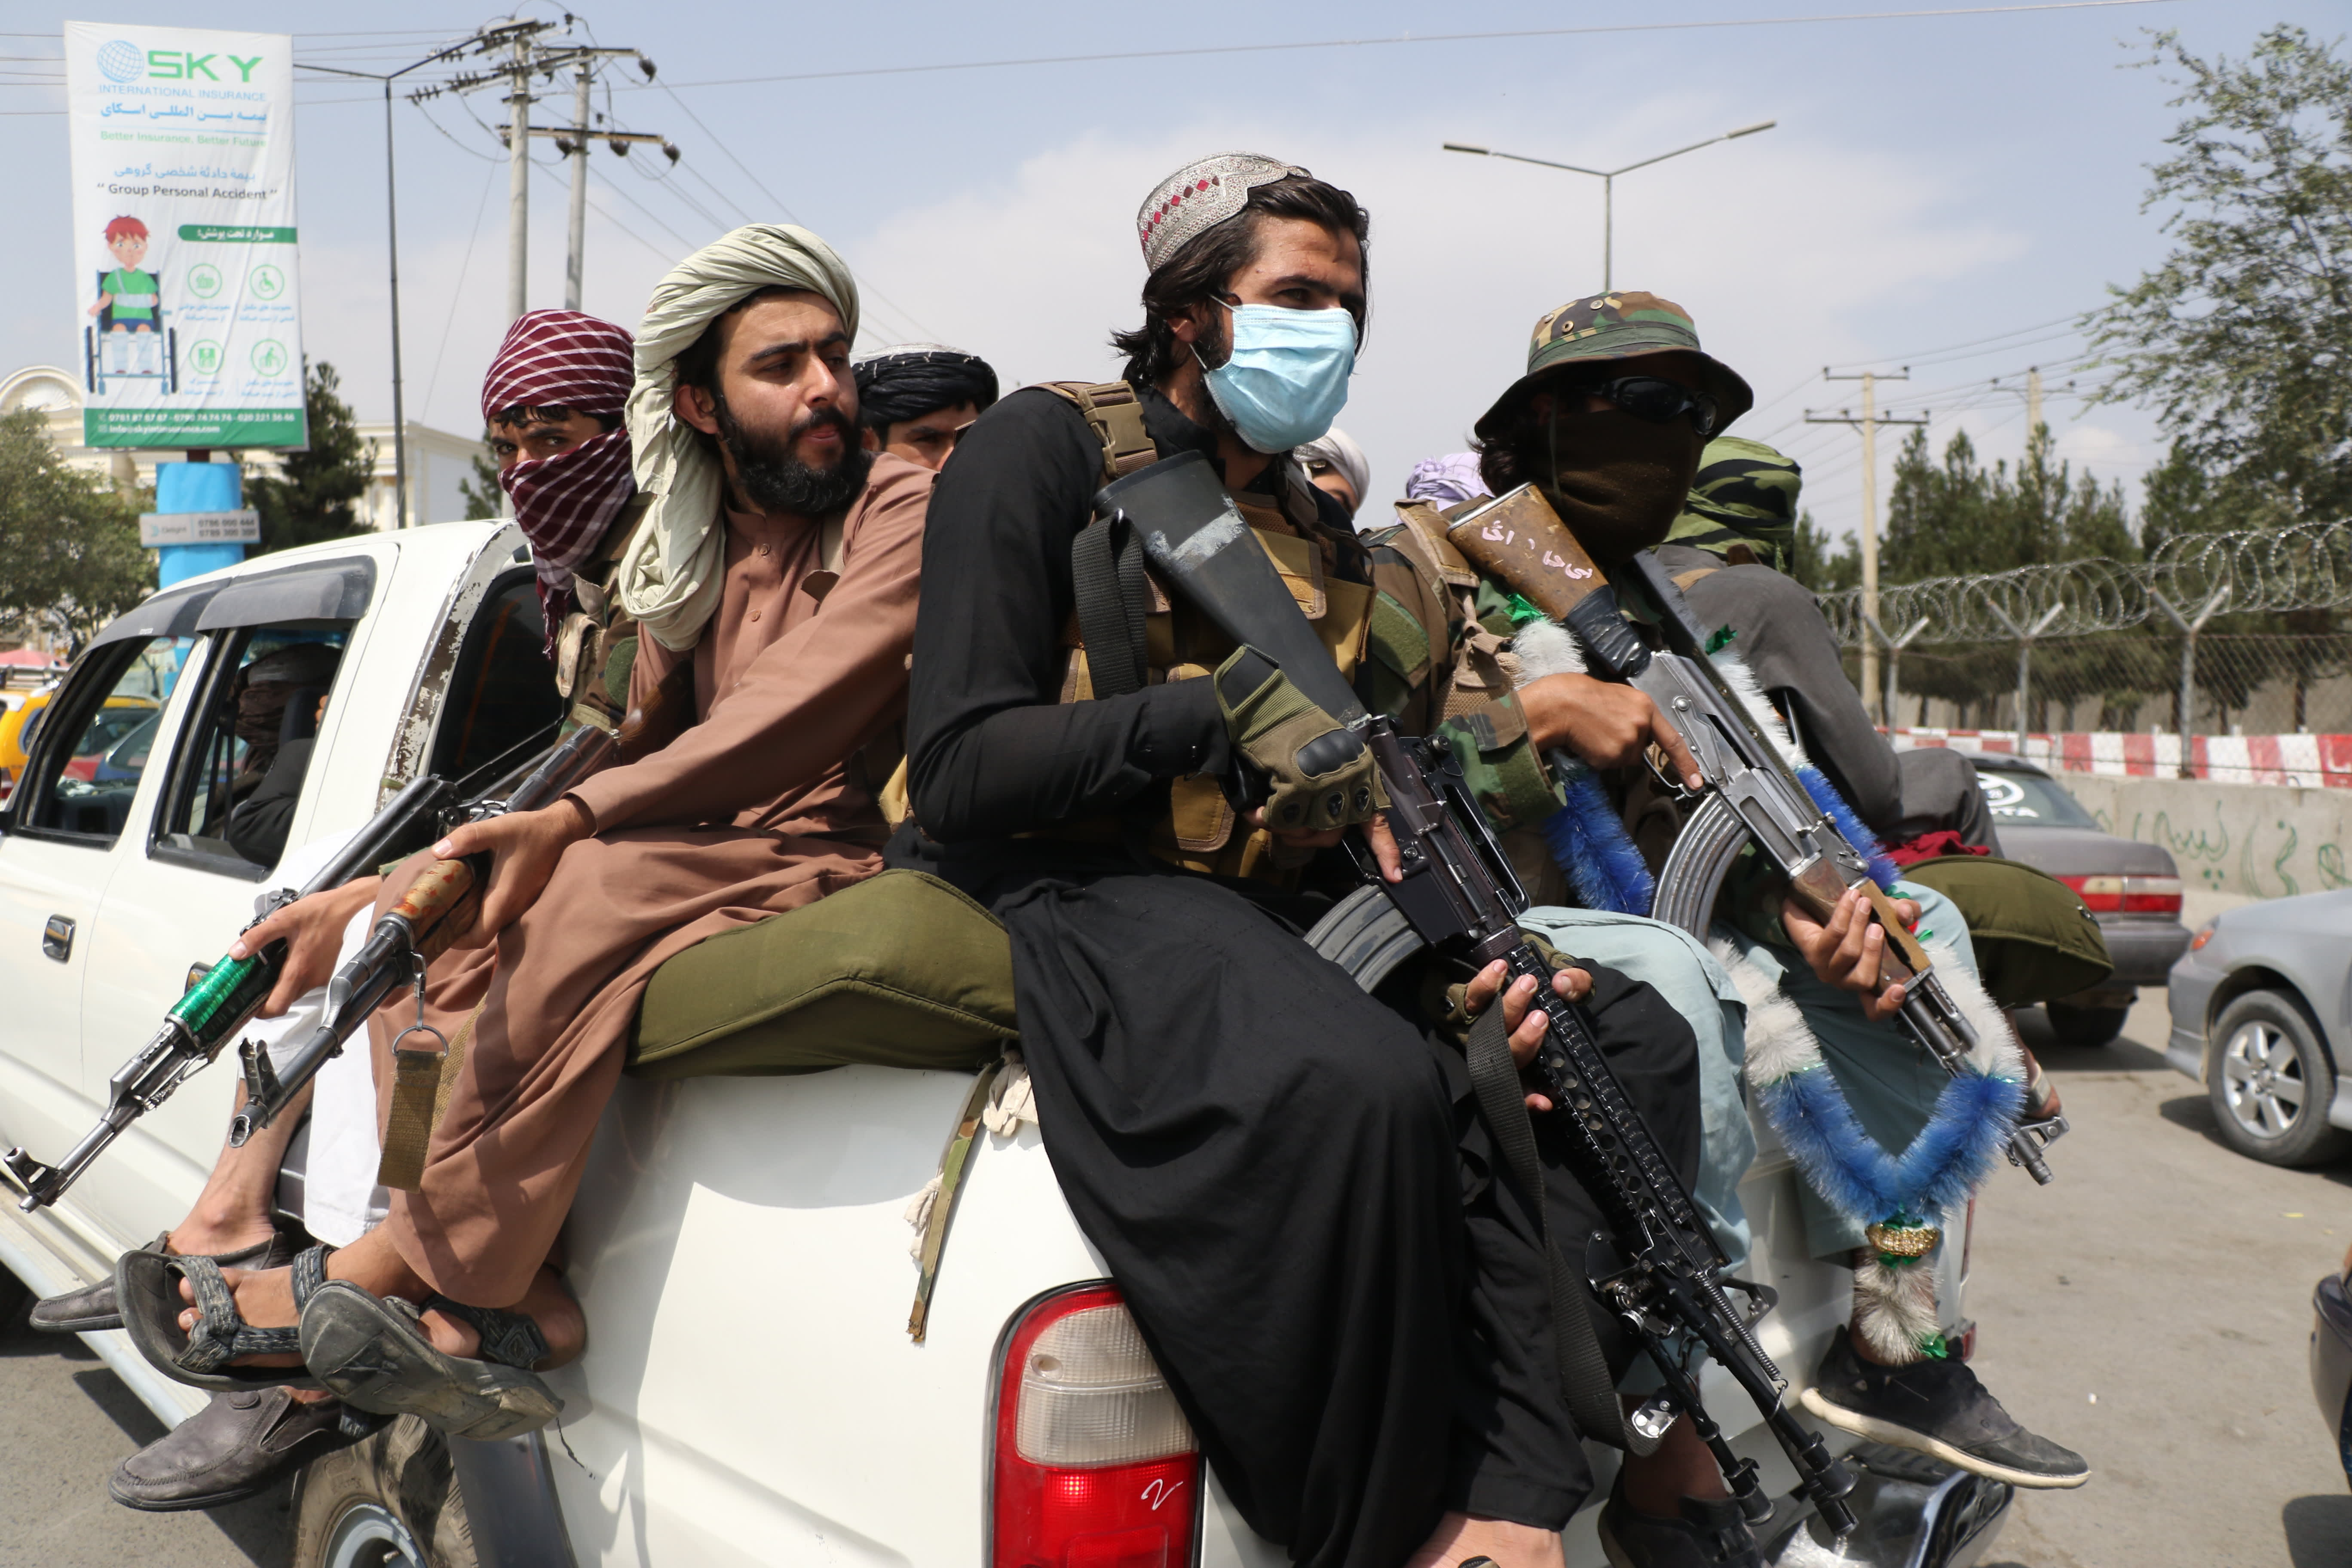 Leon Panetta: It's a mistake for the U.S. to count on the Taliban in Afghanistan